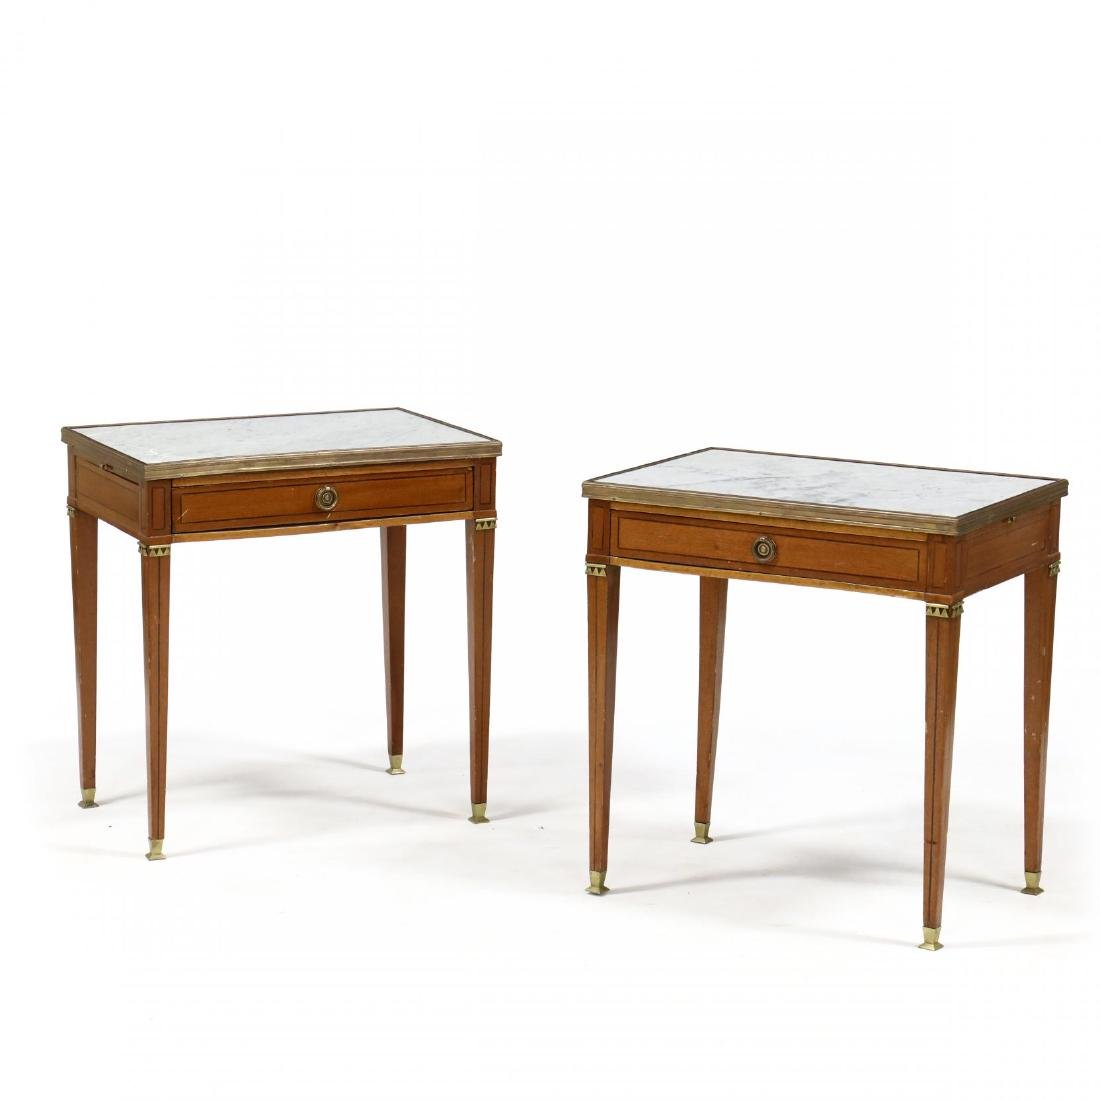 Pair of Directoire Style Marble Top Inlaid Stands